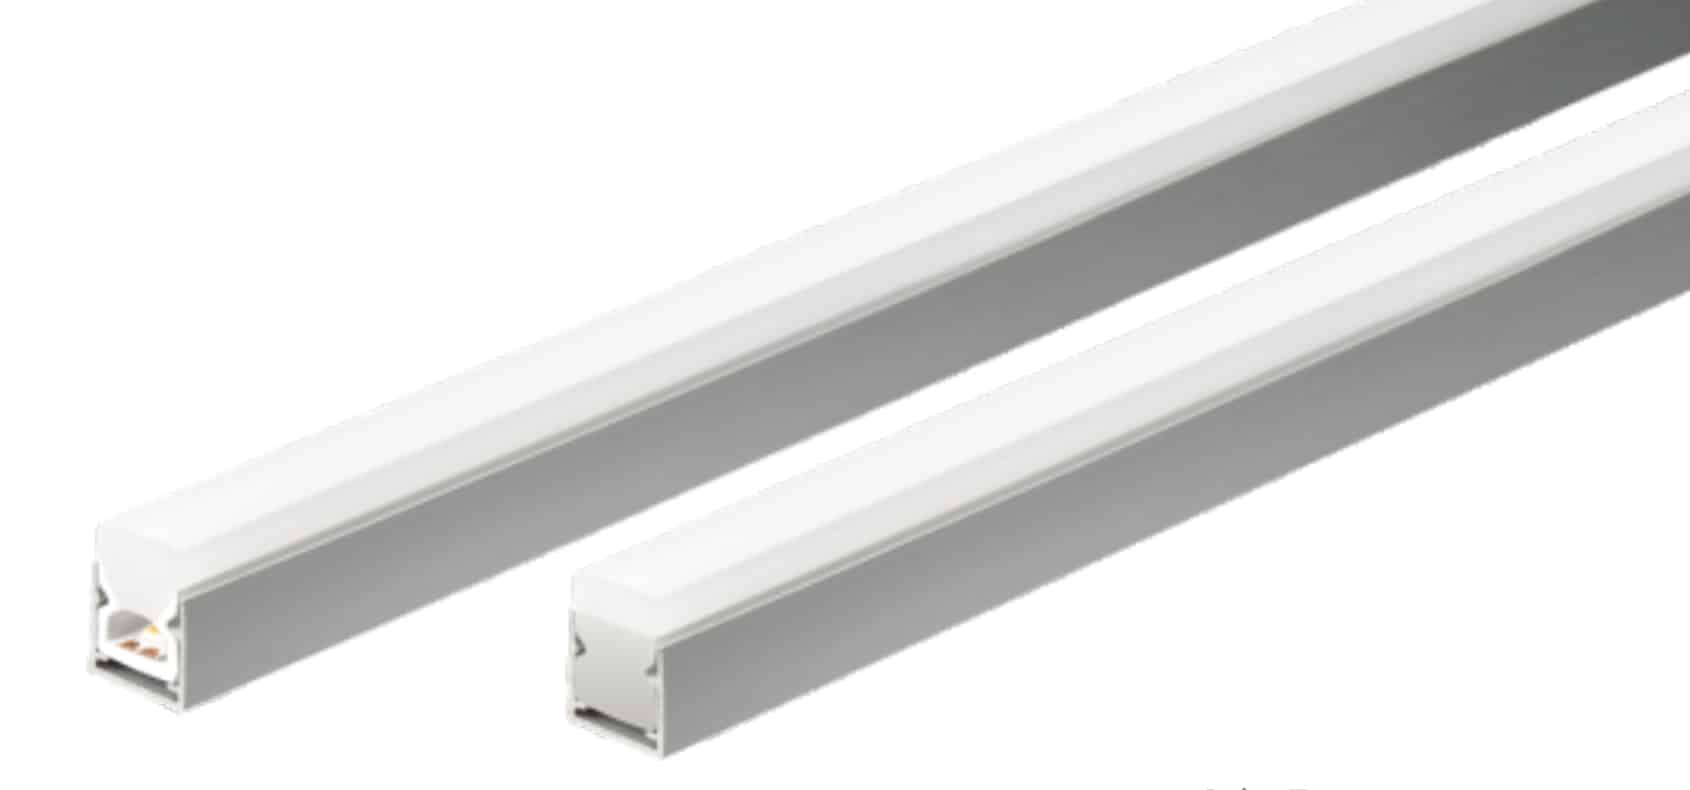 LED Profile IP65 to Ip68